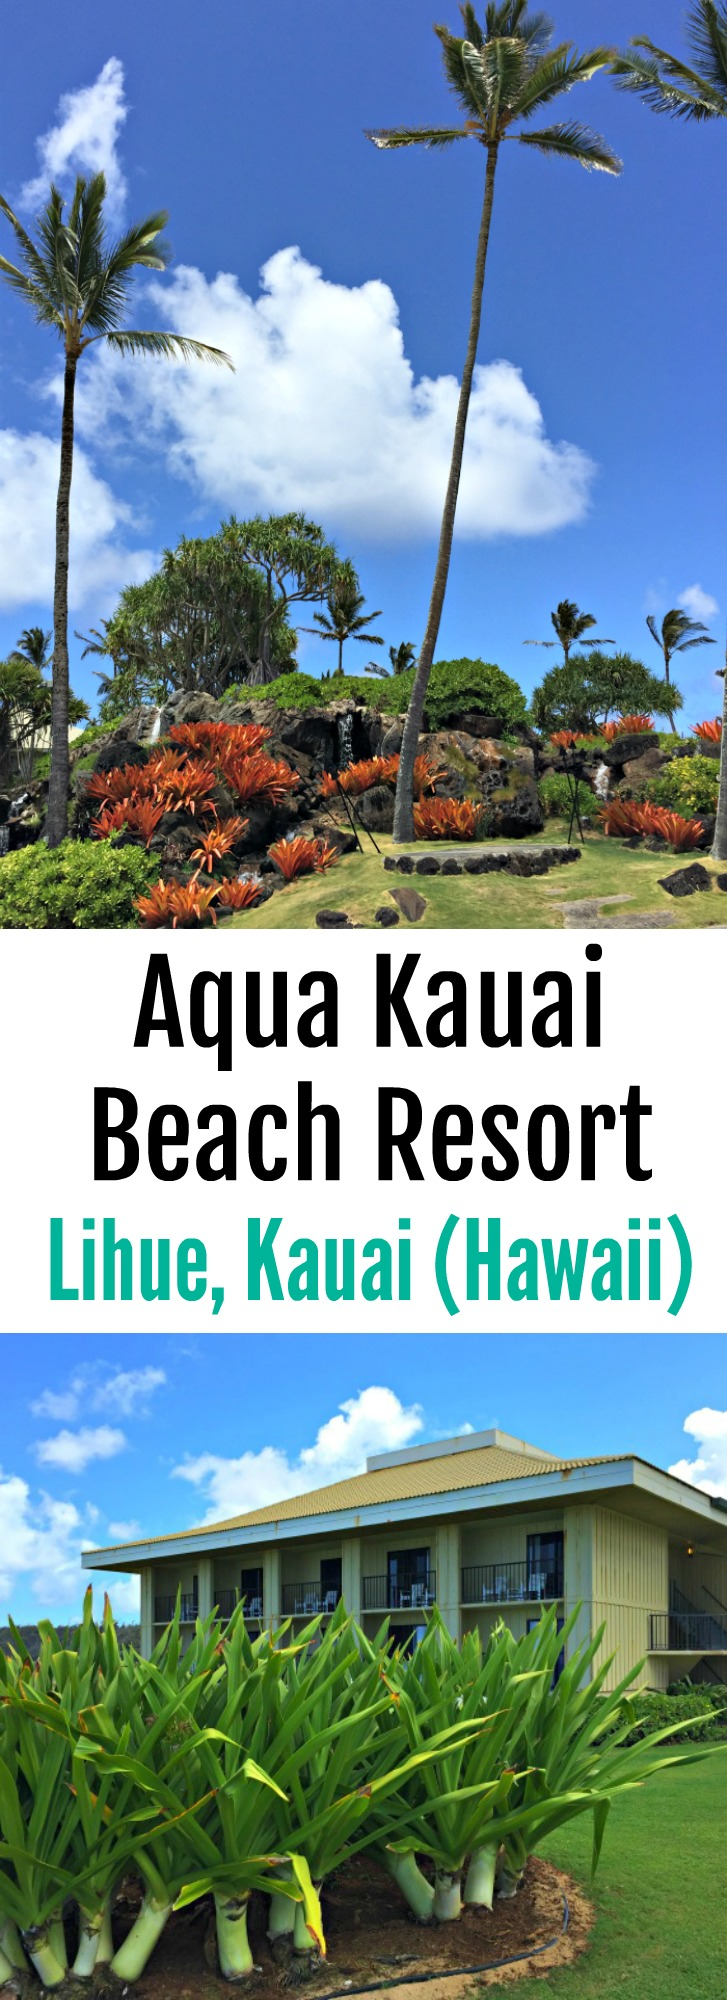 Trip report - Aqua Kauai Beach Resort in Lihue, Kauai - Hawaii.